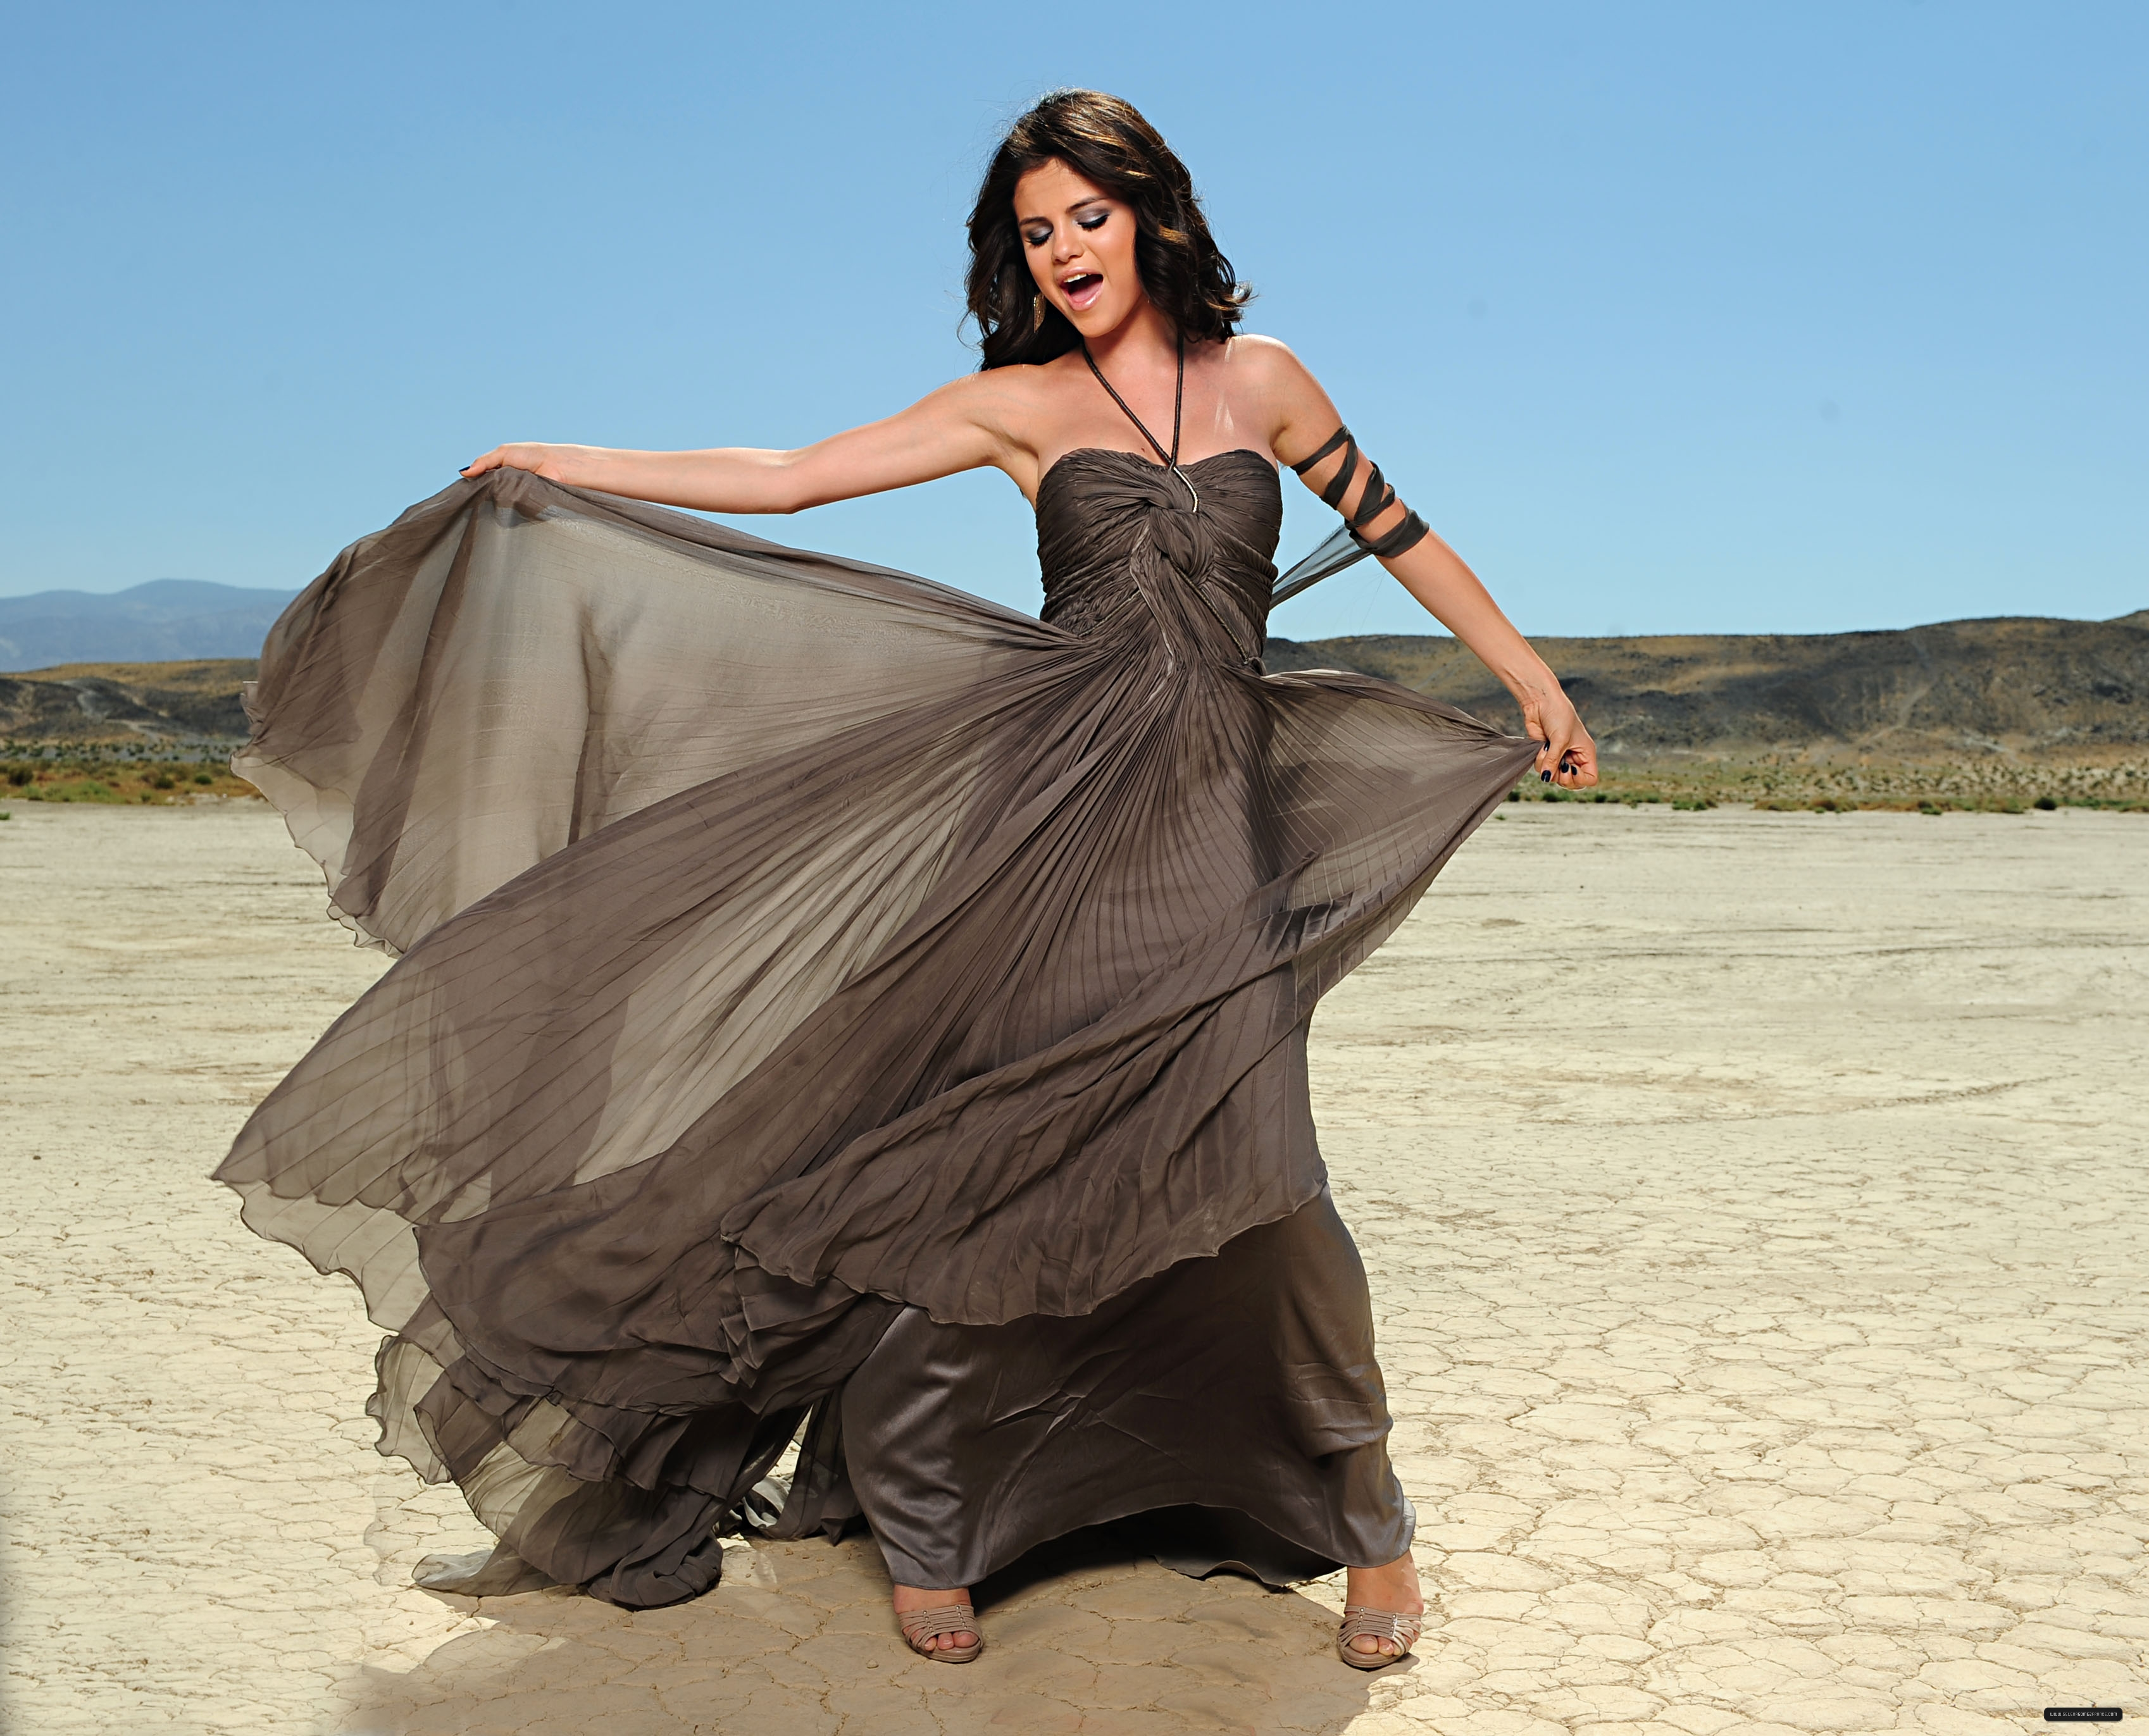 Selena Gomez's dress in A ano Without Rain